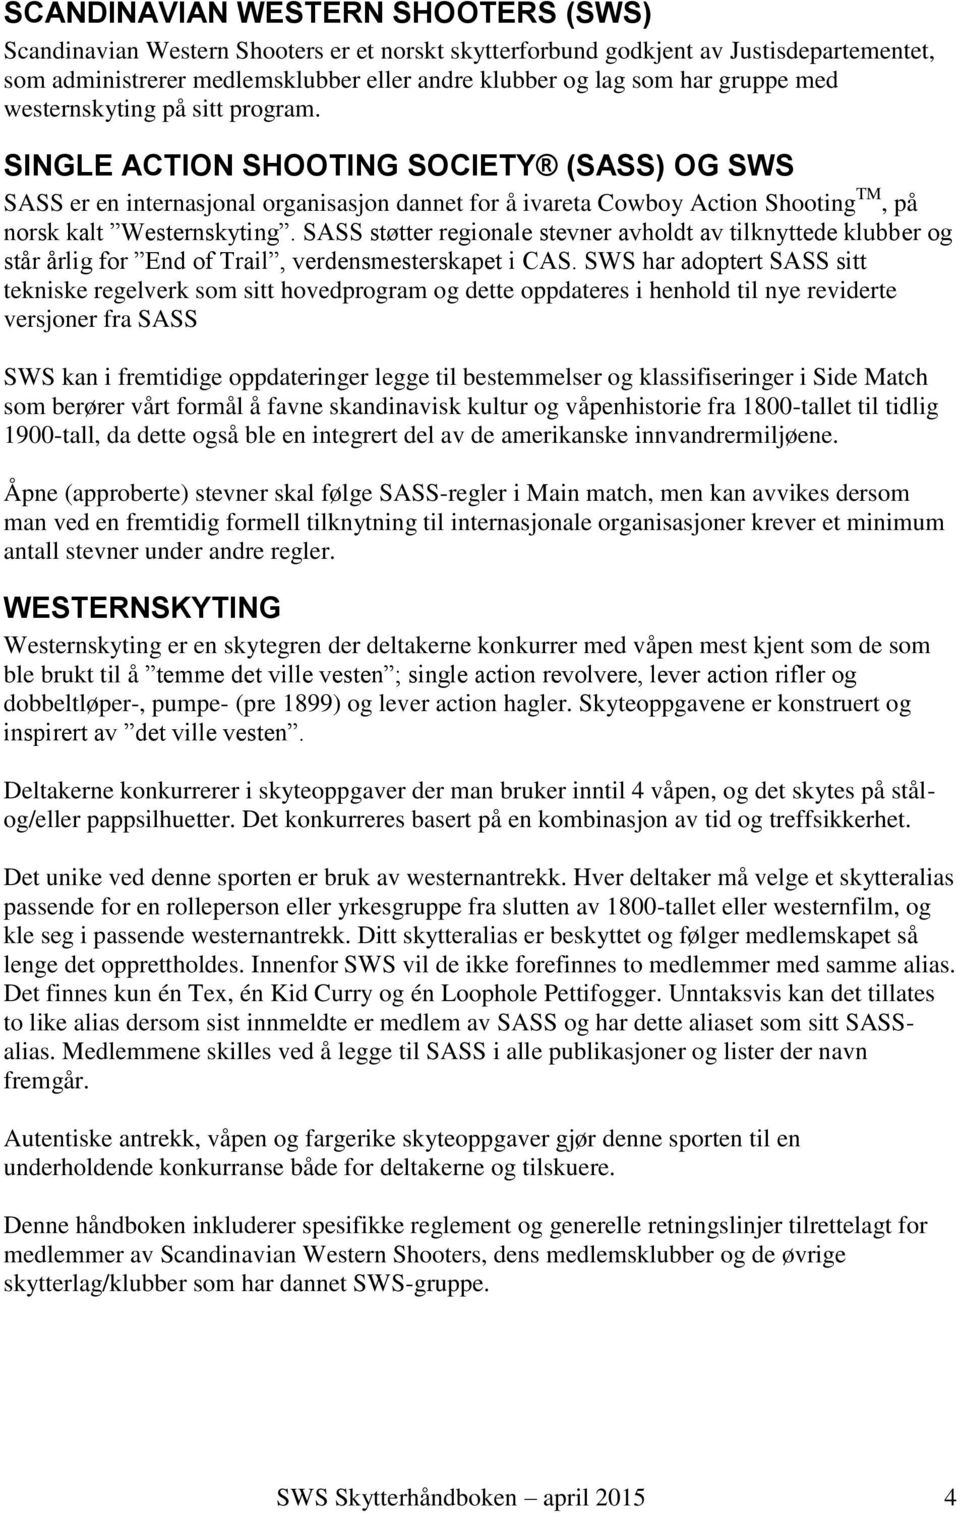 SINGLE ACTION SHOOTING SOCIETY (SASS) OG SWS SASS er en internasjonal organisasjon dannet for å ivareta Cowboy Action Shooting TM, på norsk kalt Westernskyting.